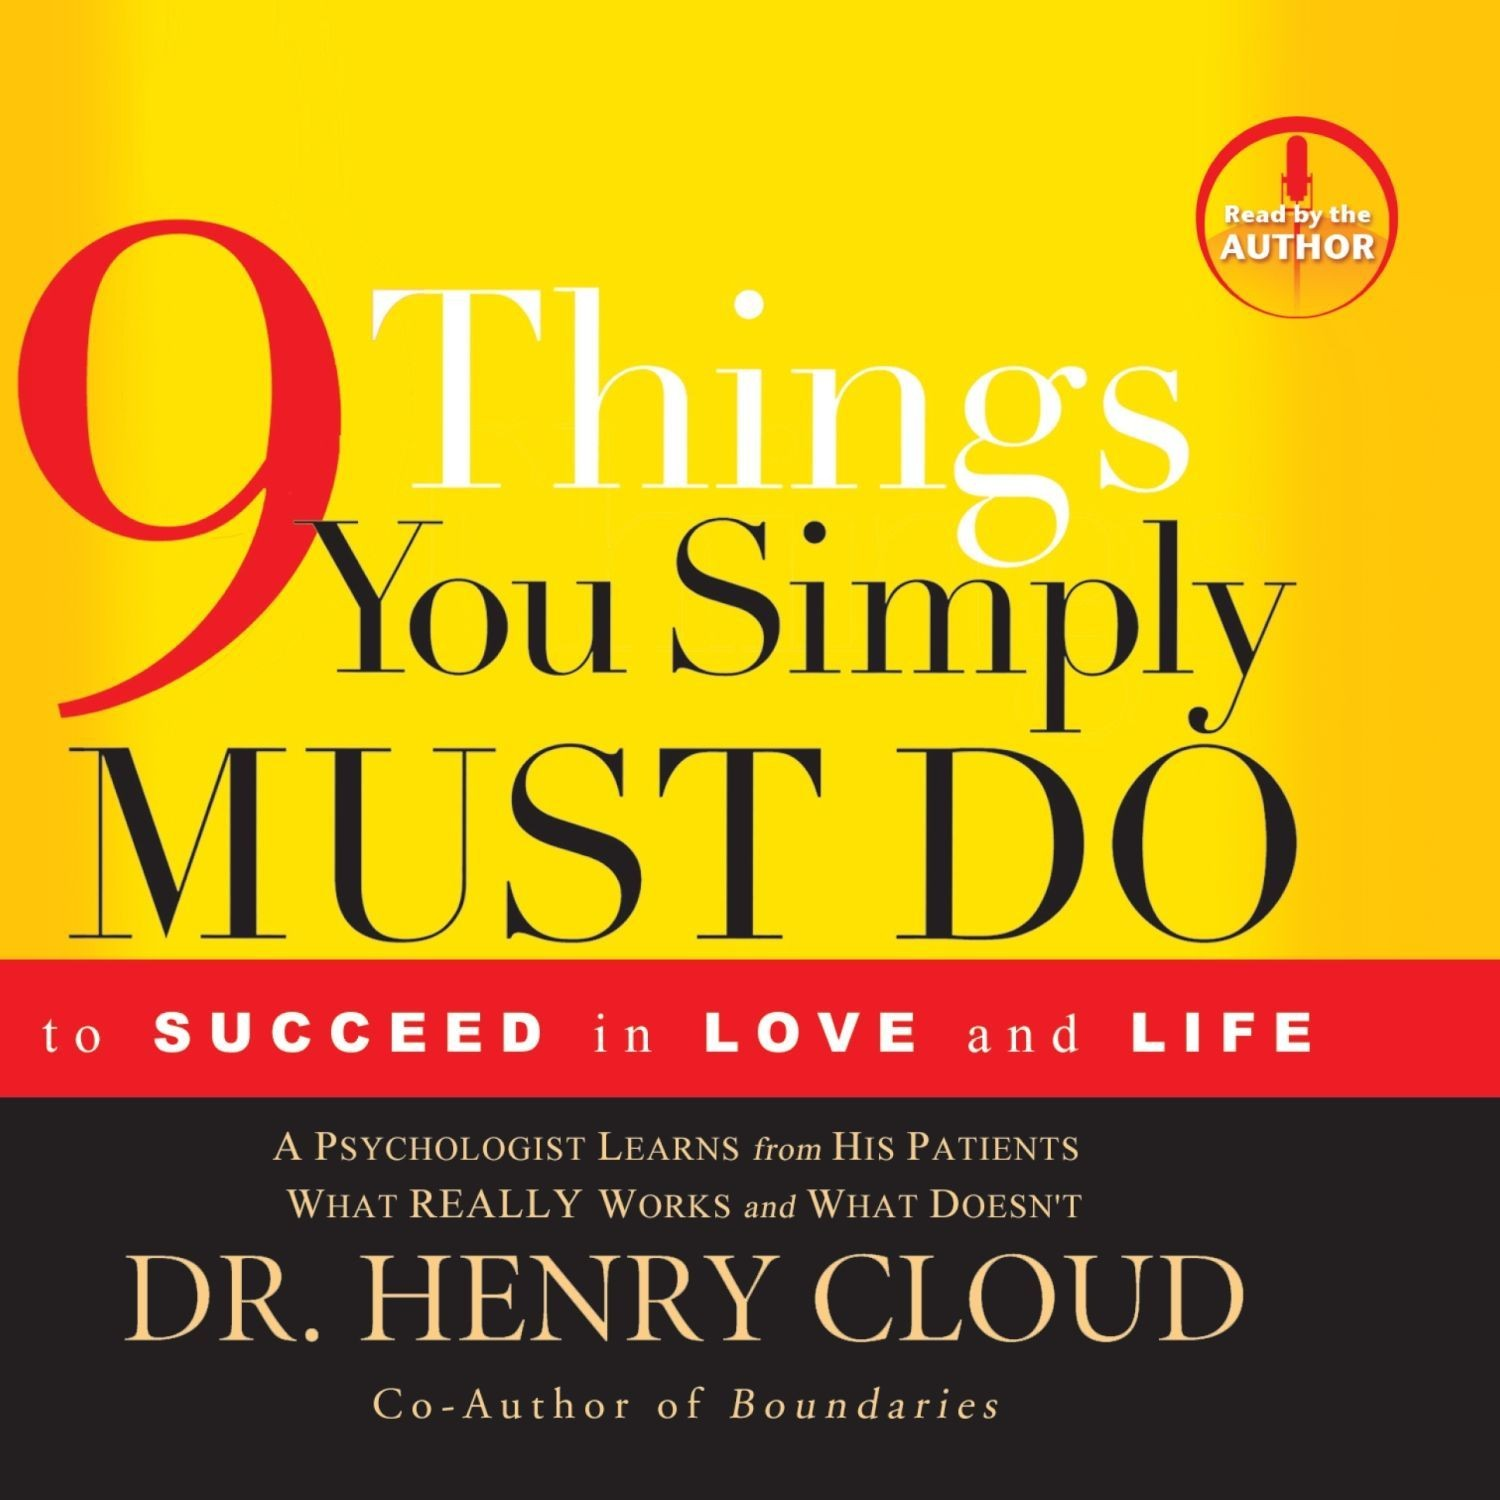 Printable 9 Things You Simply Must Do: To Succeed in Love and Life Audiobook Cover Art